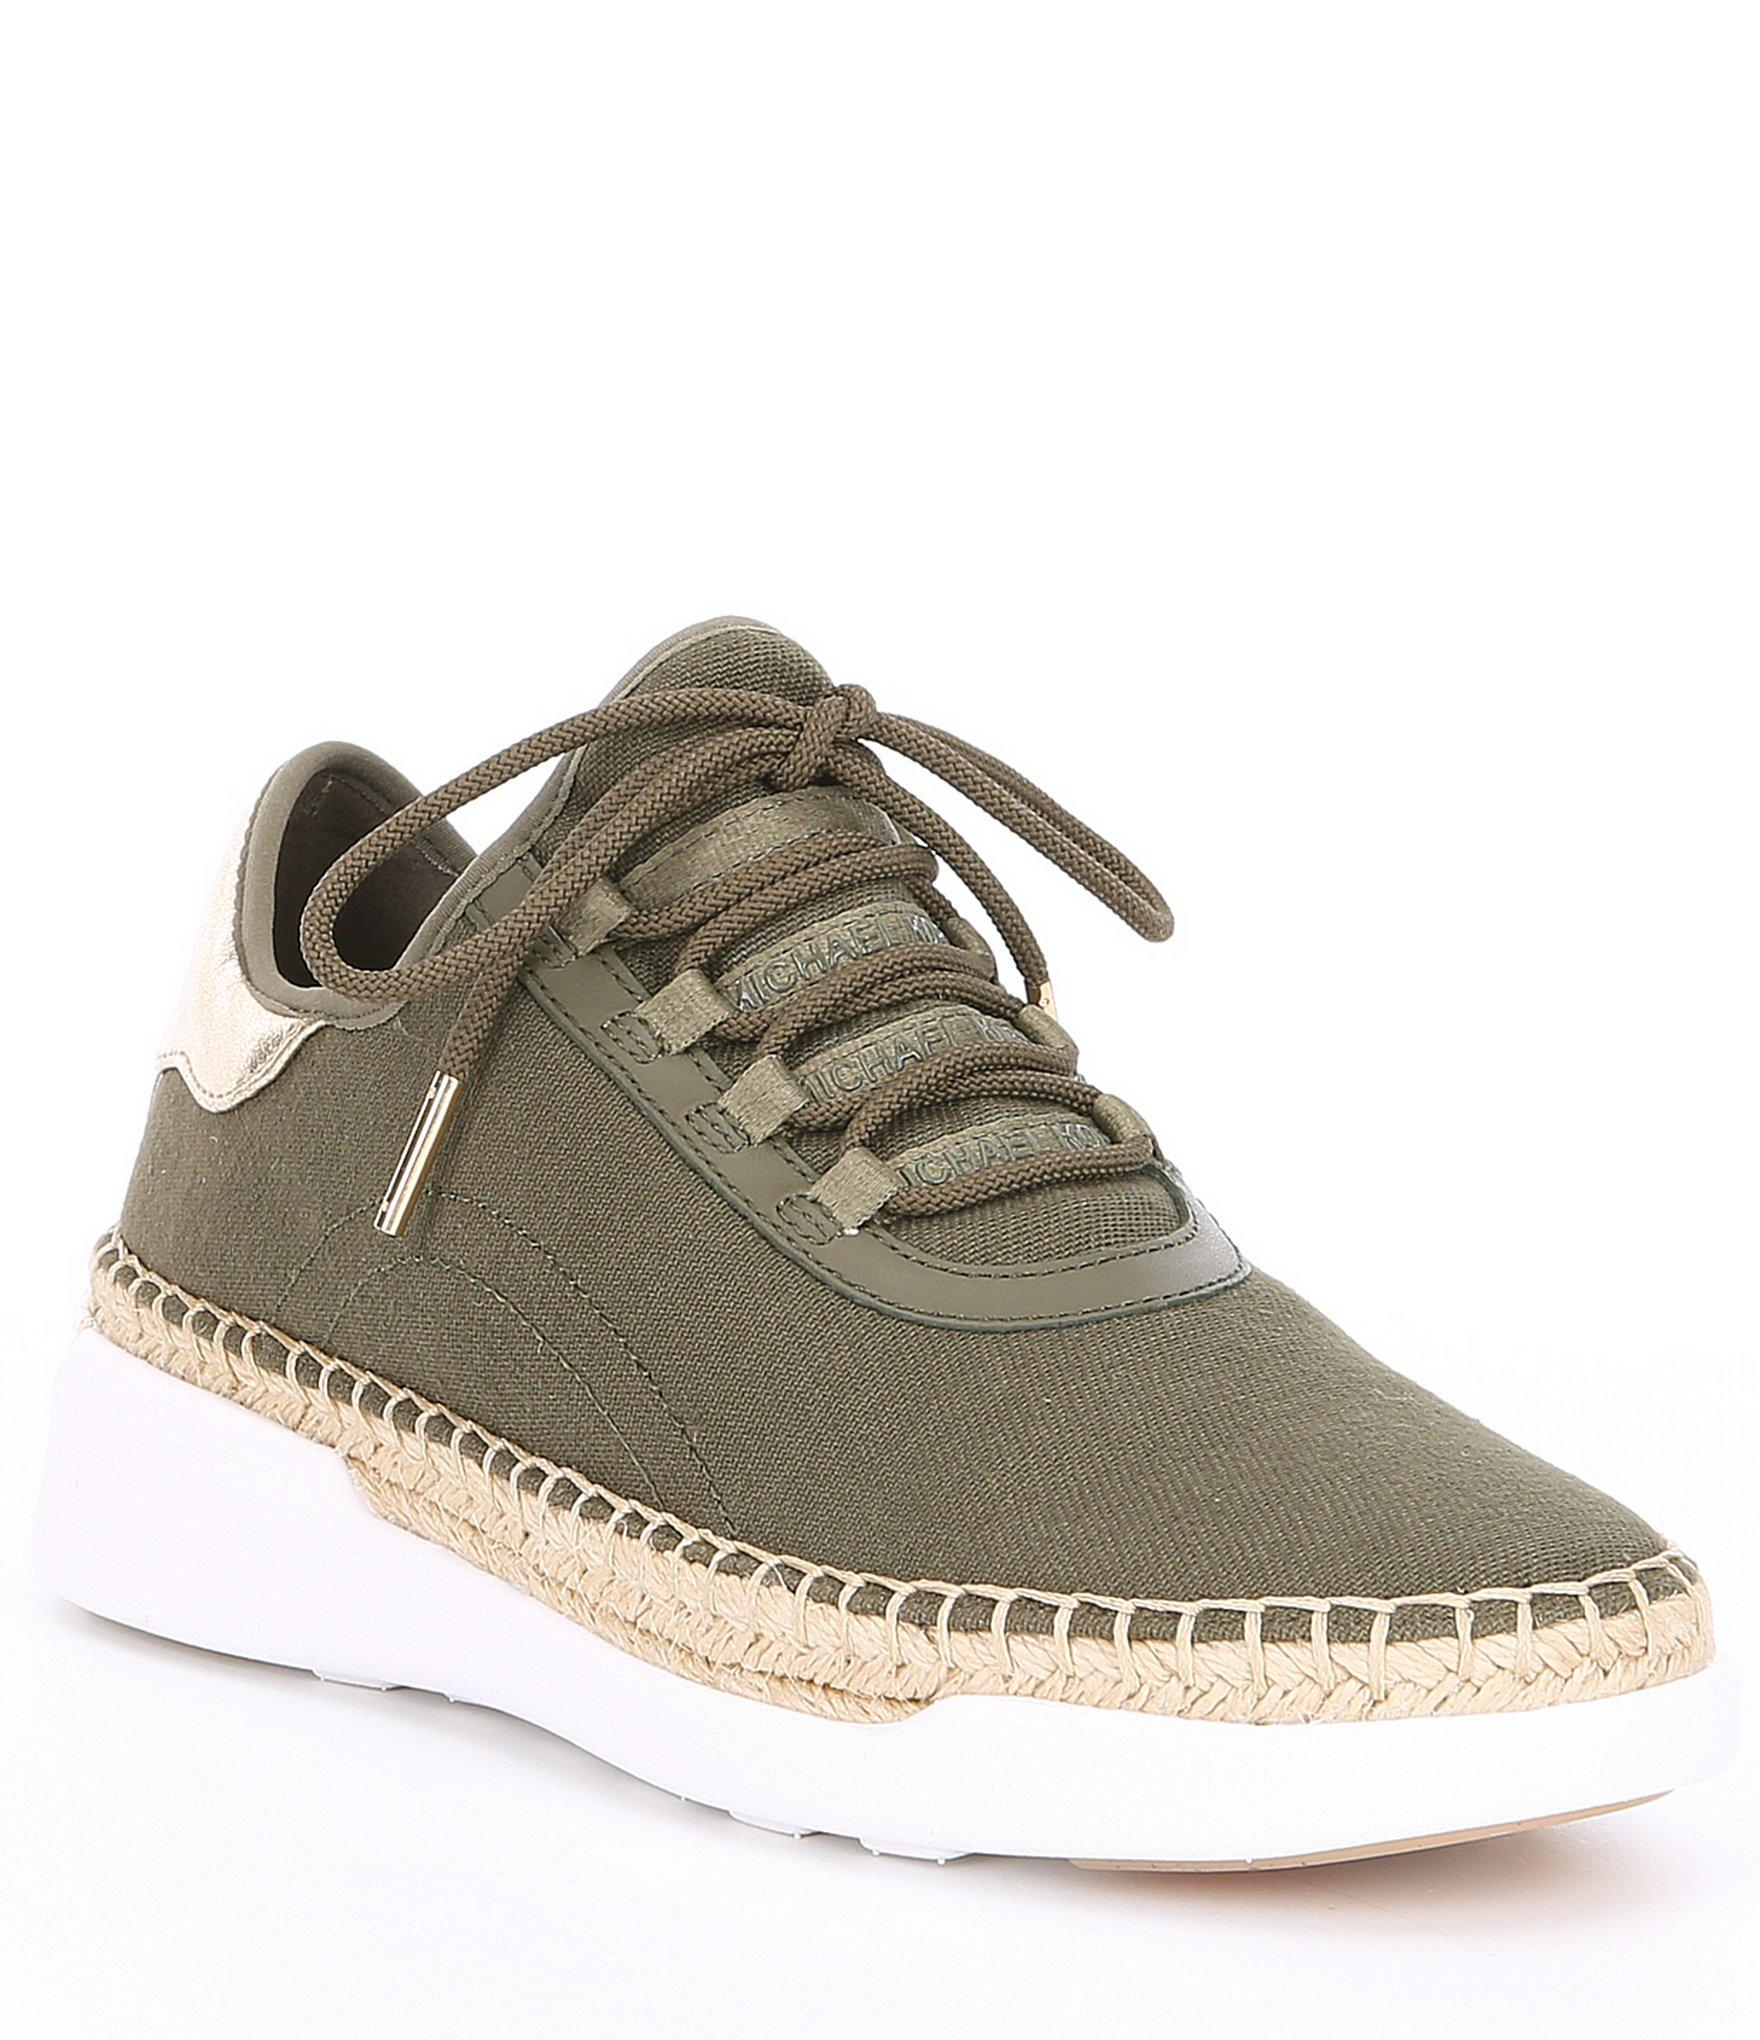 4c71bea80792 Lyst - Michael Kors Finch Canvas And Leather Lace-up Sneaker in ...